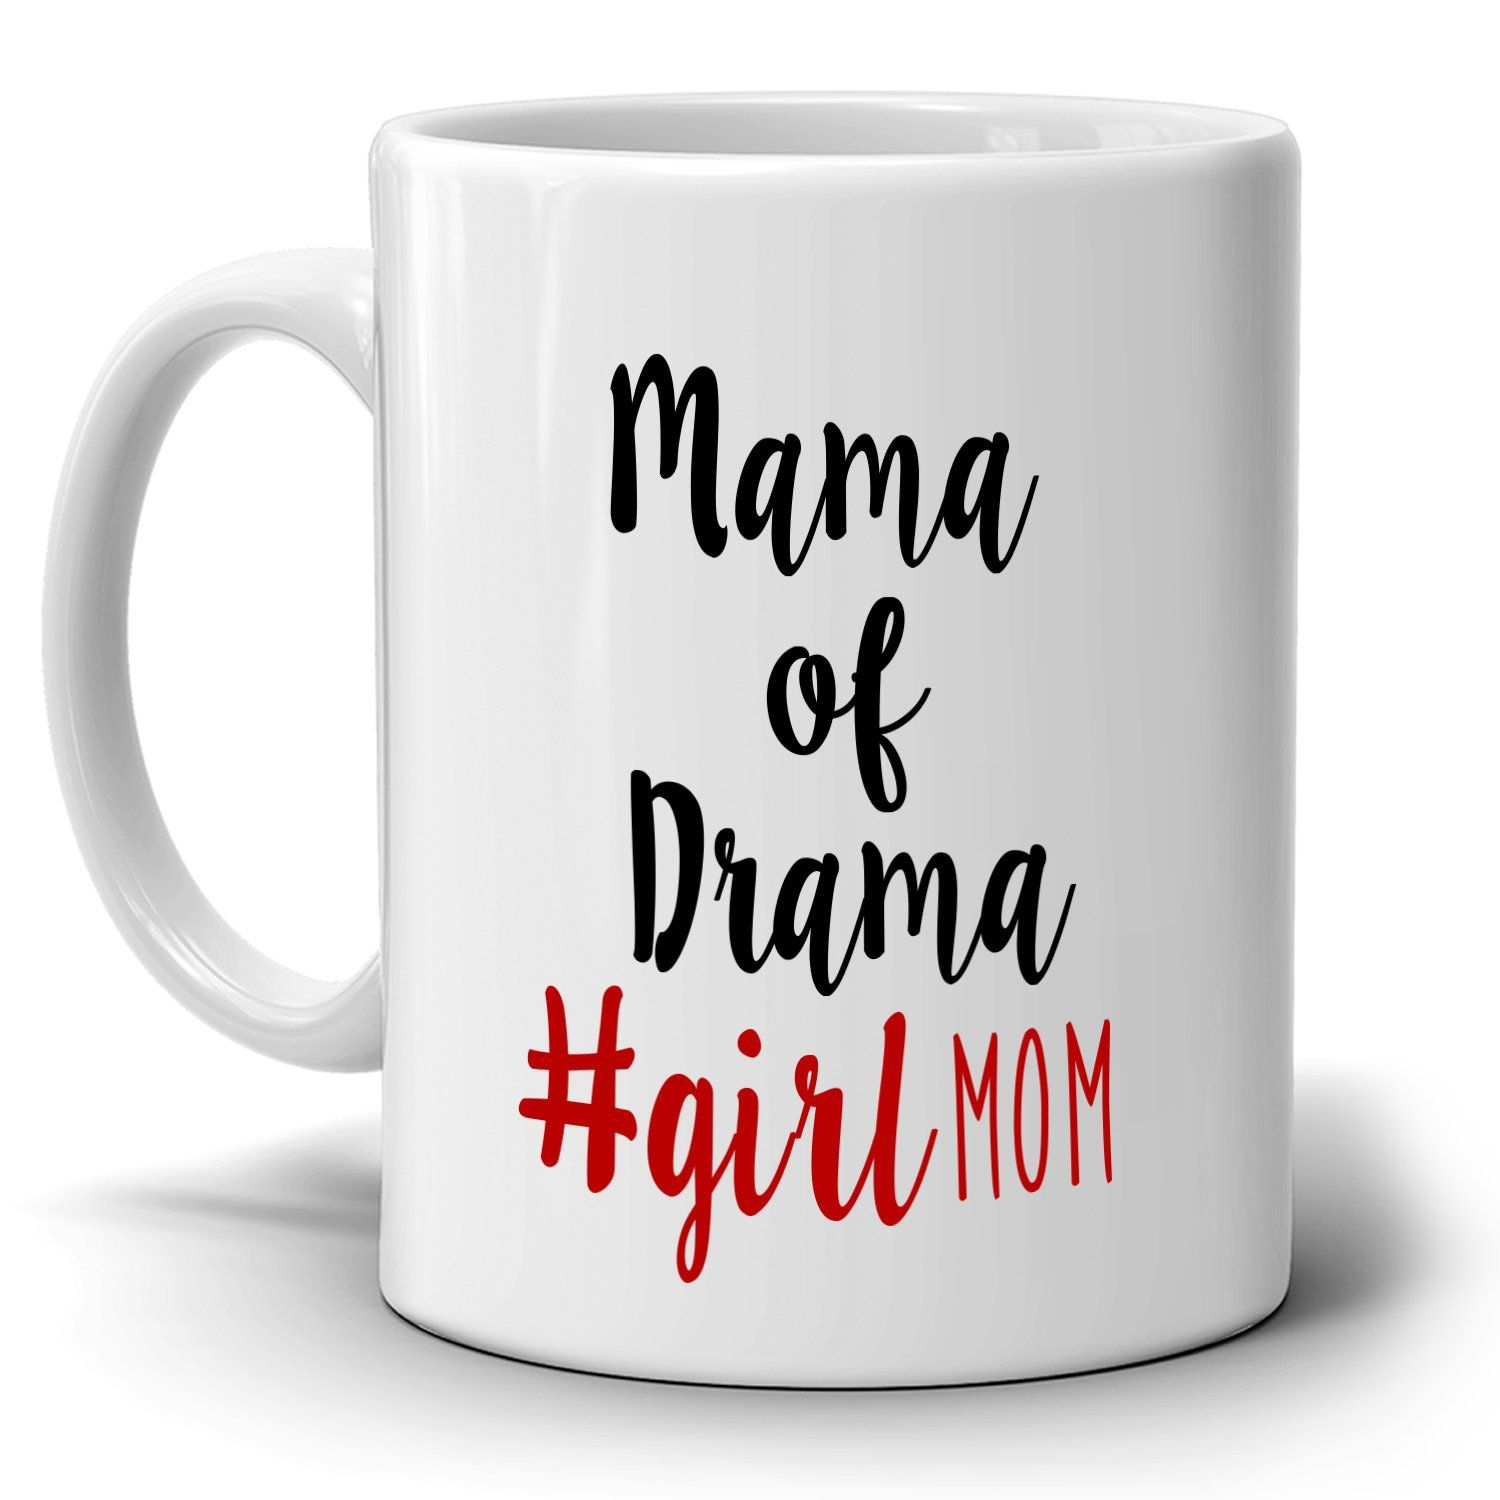 Funny daughters gifts for mothers day mug mama of drama